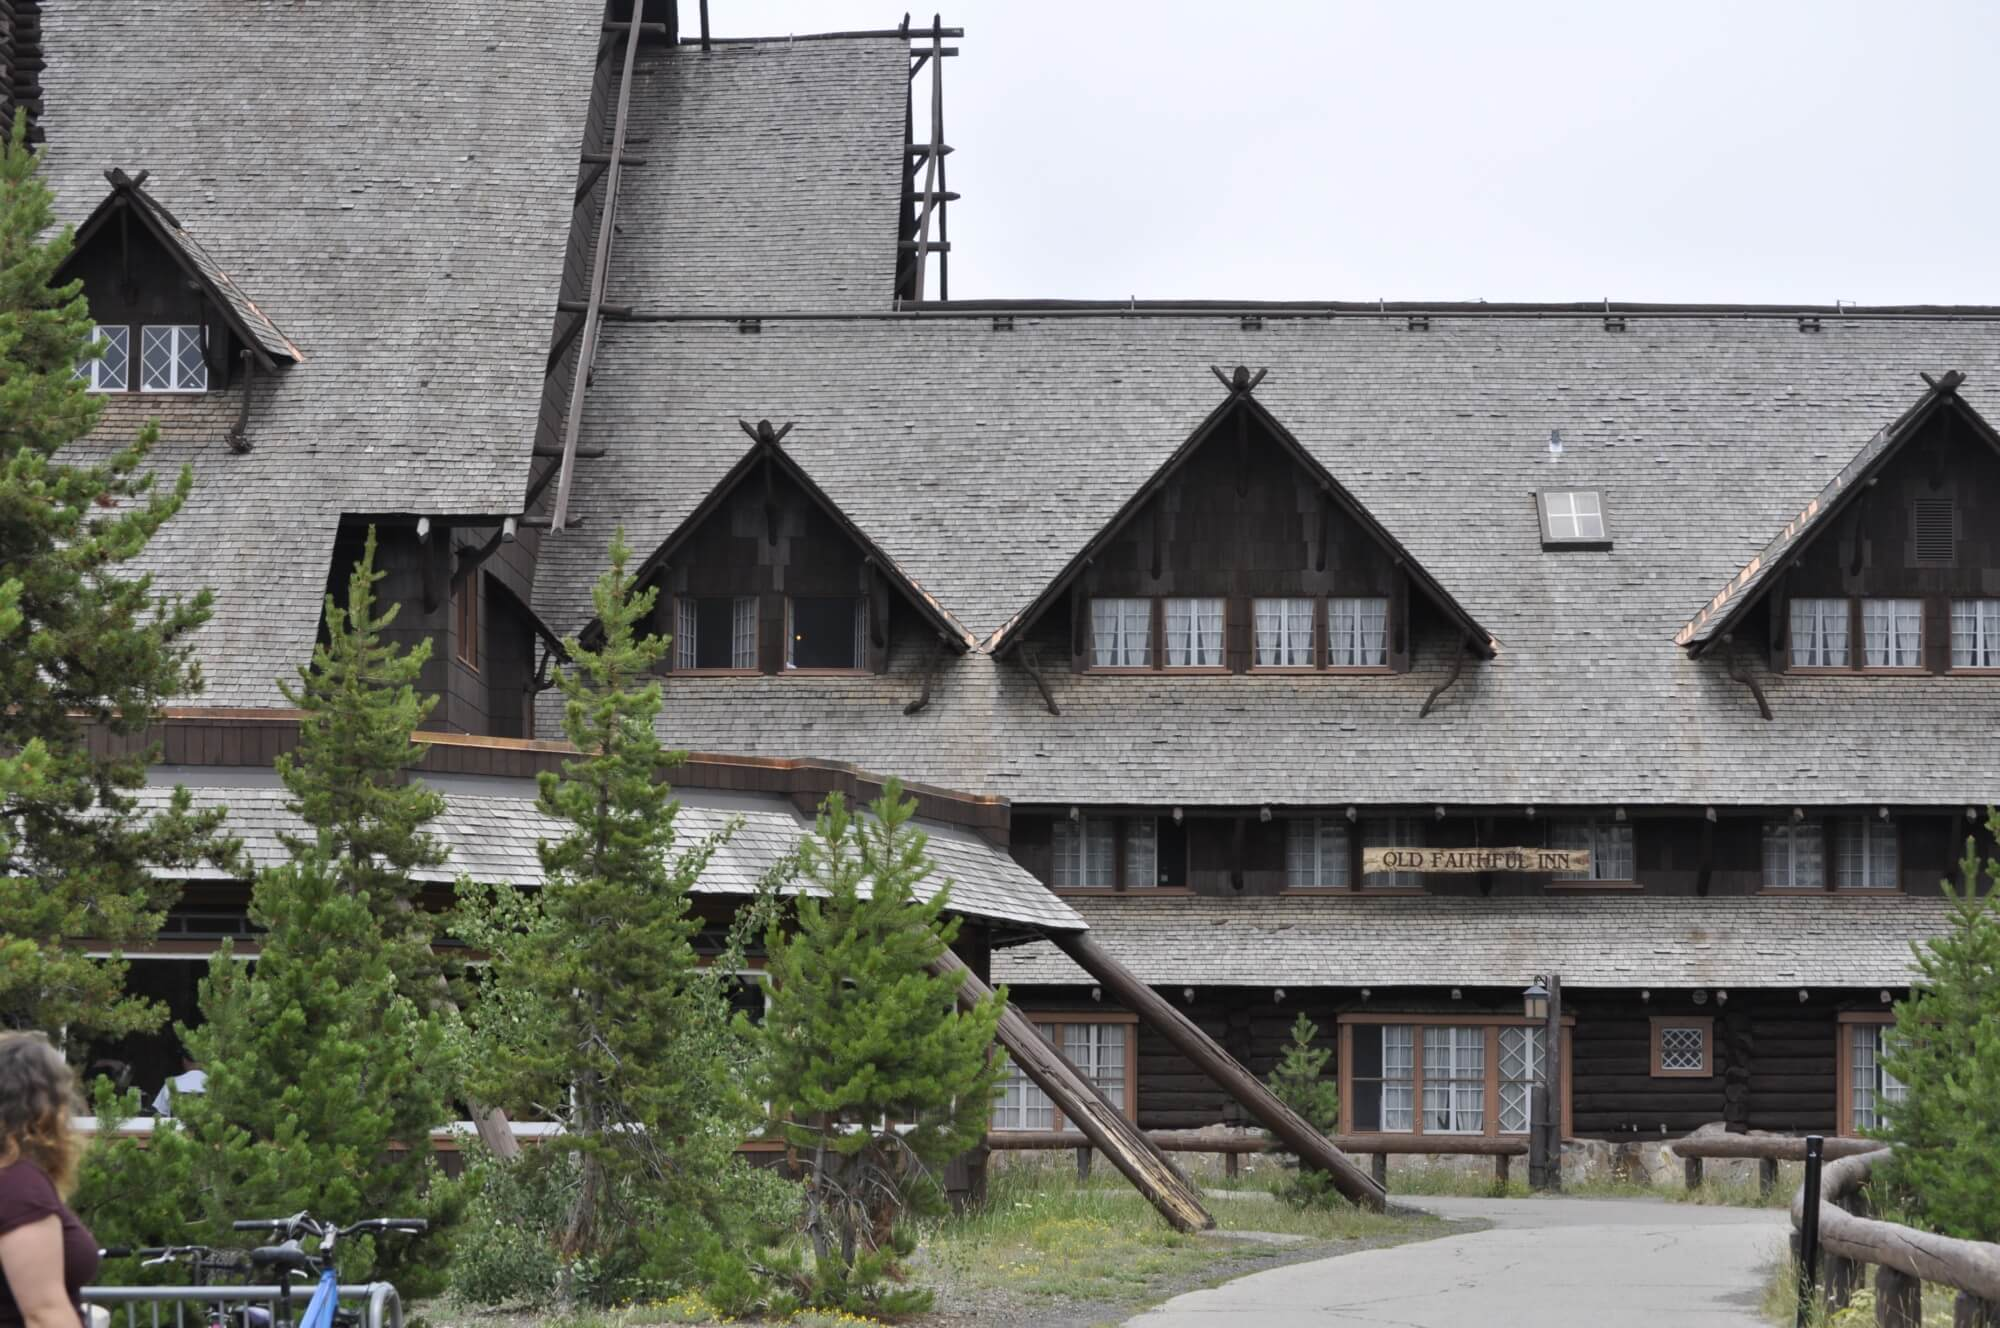 Old Faithful Inn is one of the best lodges in Yellowstone National Park; staying inside the park is one of our Yellowstone tips.